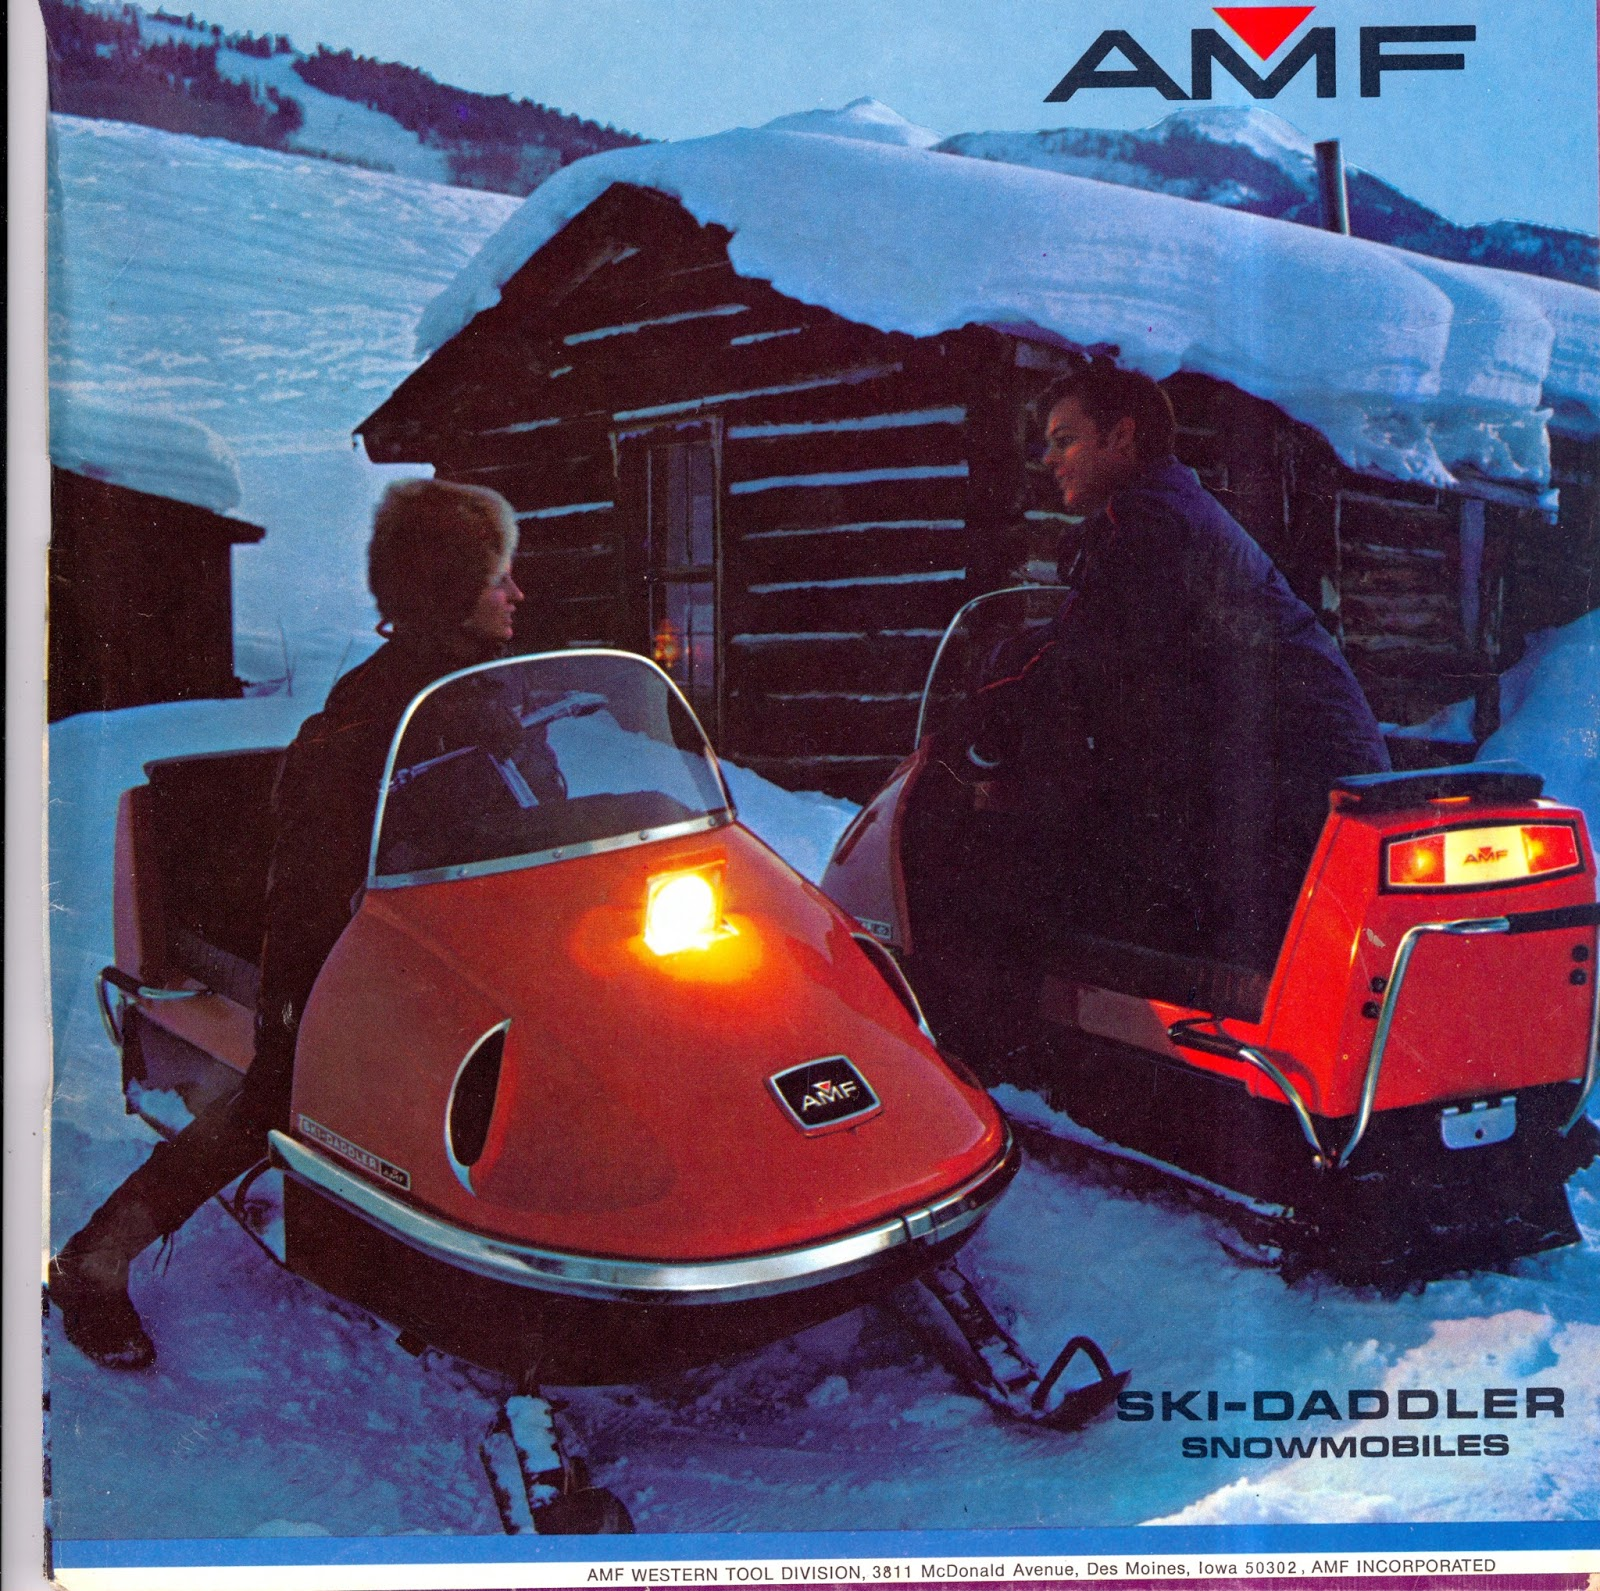 CLASSIC SNOWMOBILES OF THE PAST: 1971 AMF SKI-DADDLER ...